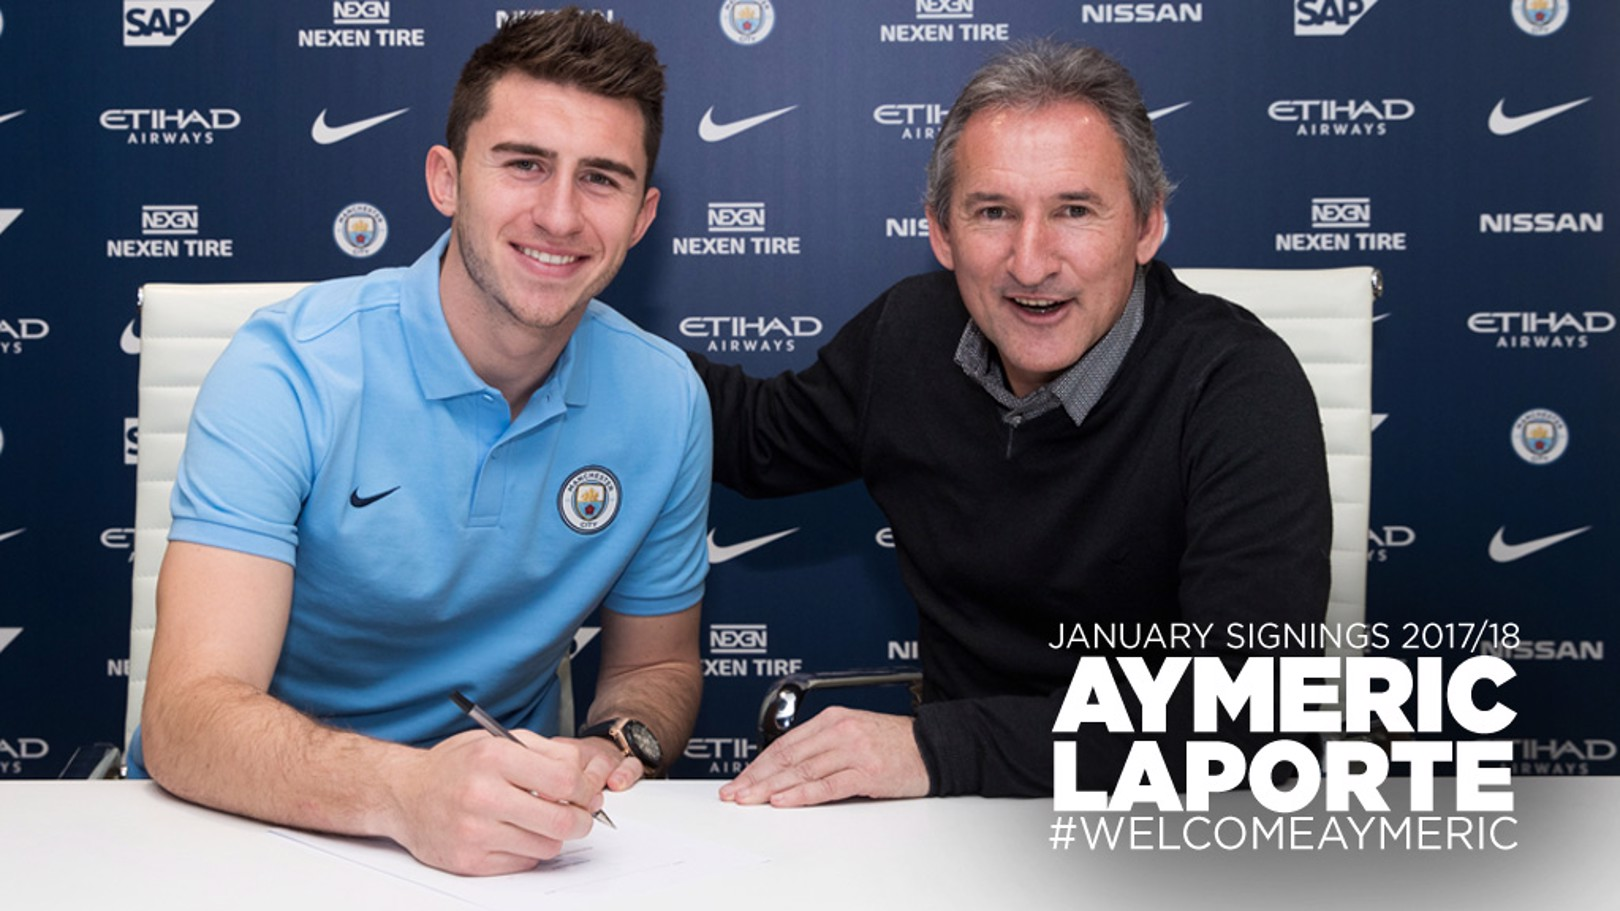 DONE DEAL: Aymeric Laporte has signed for City